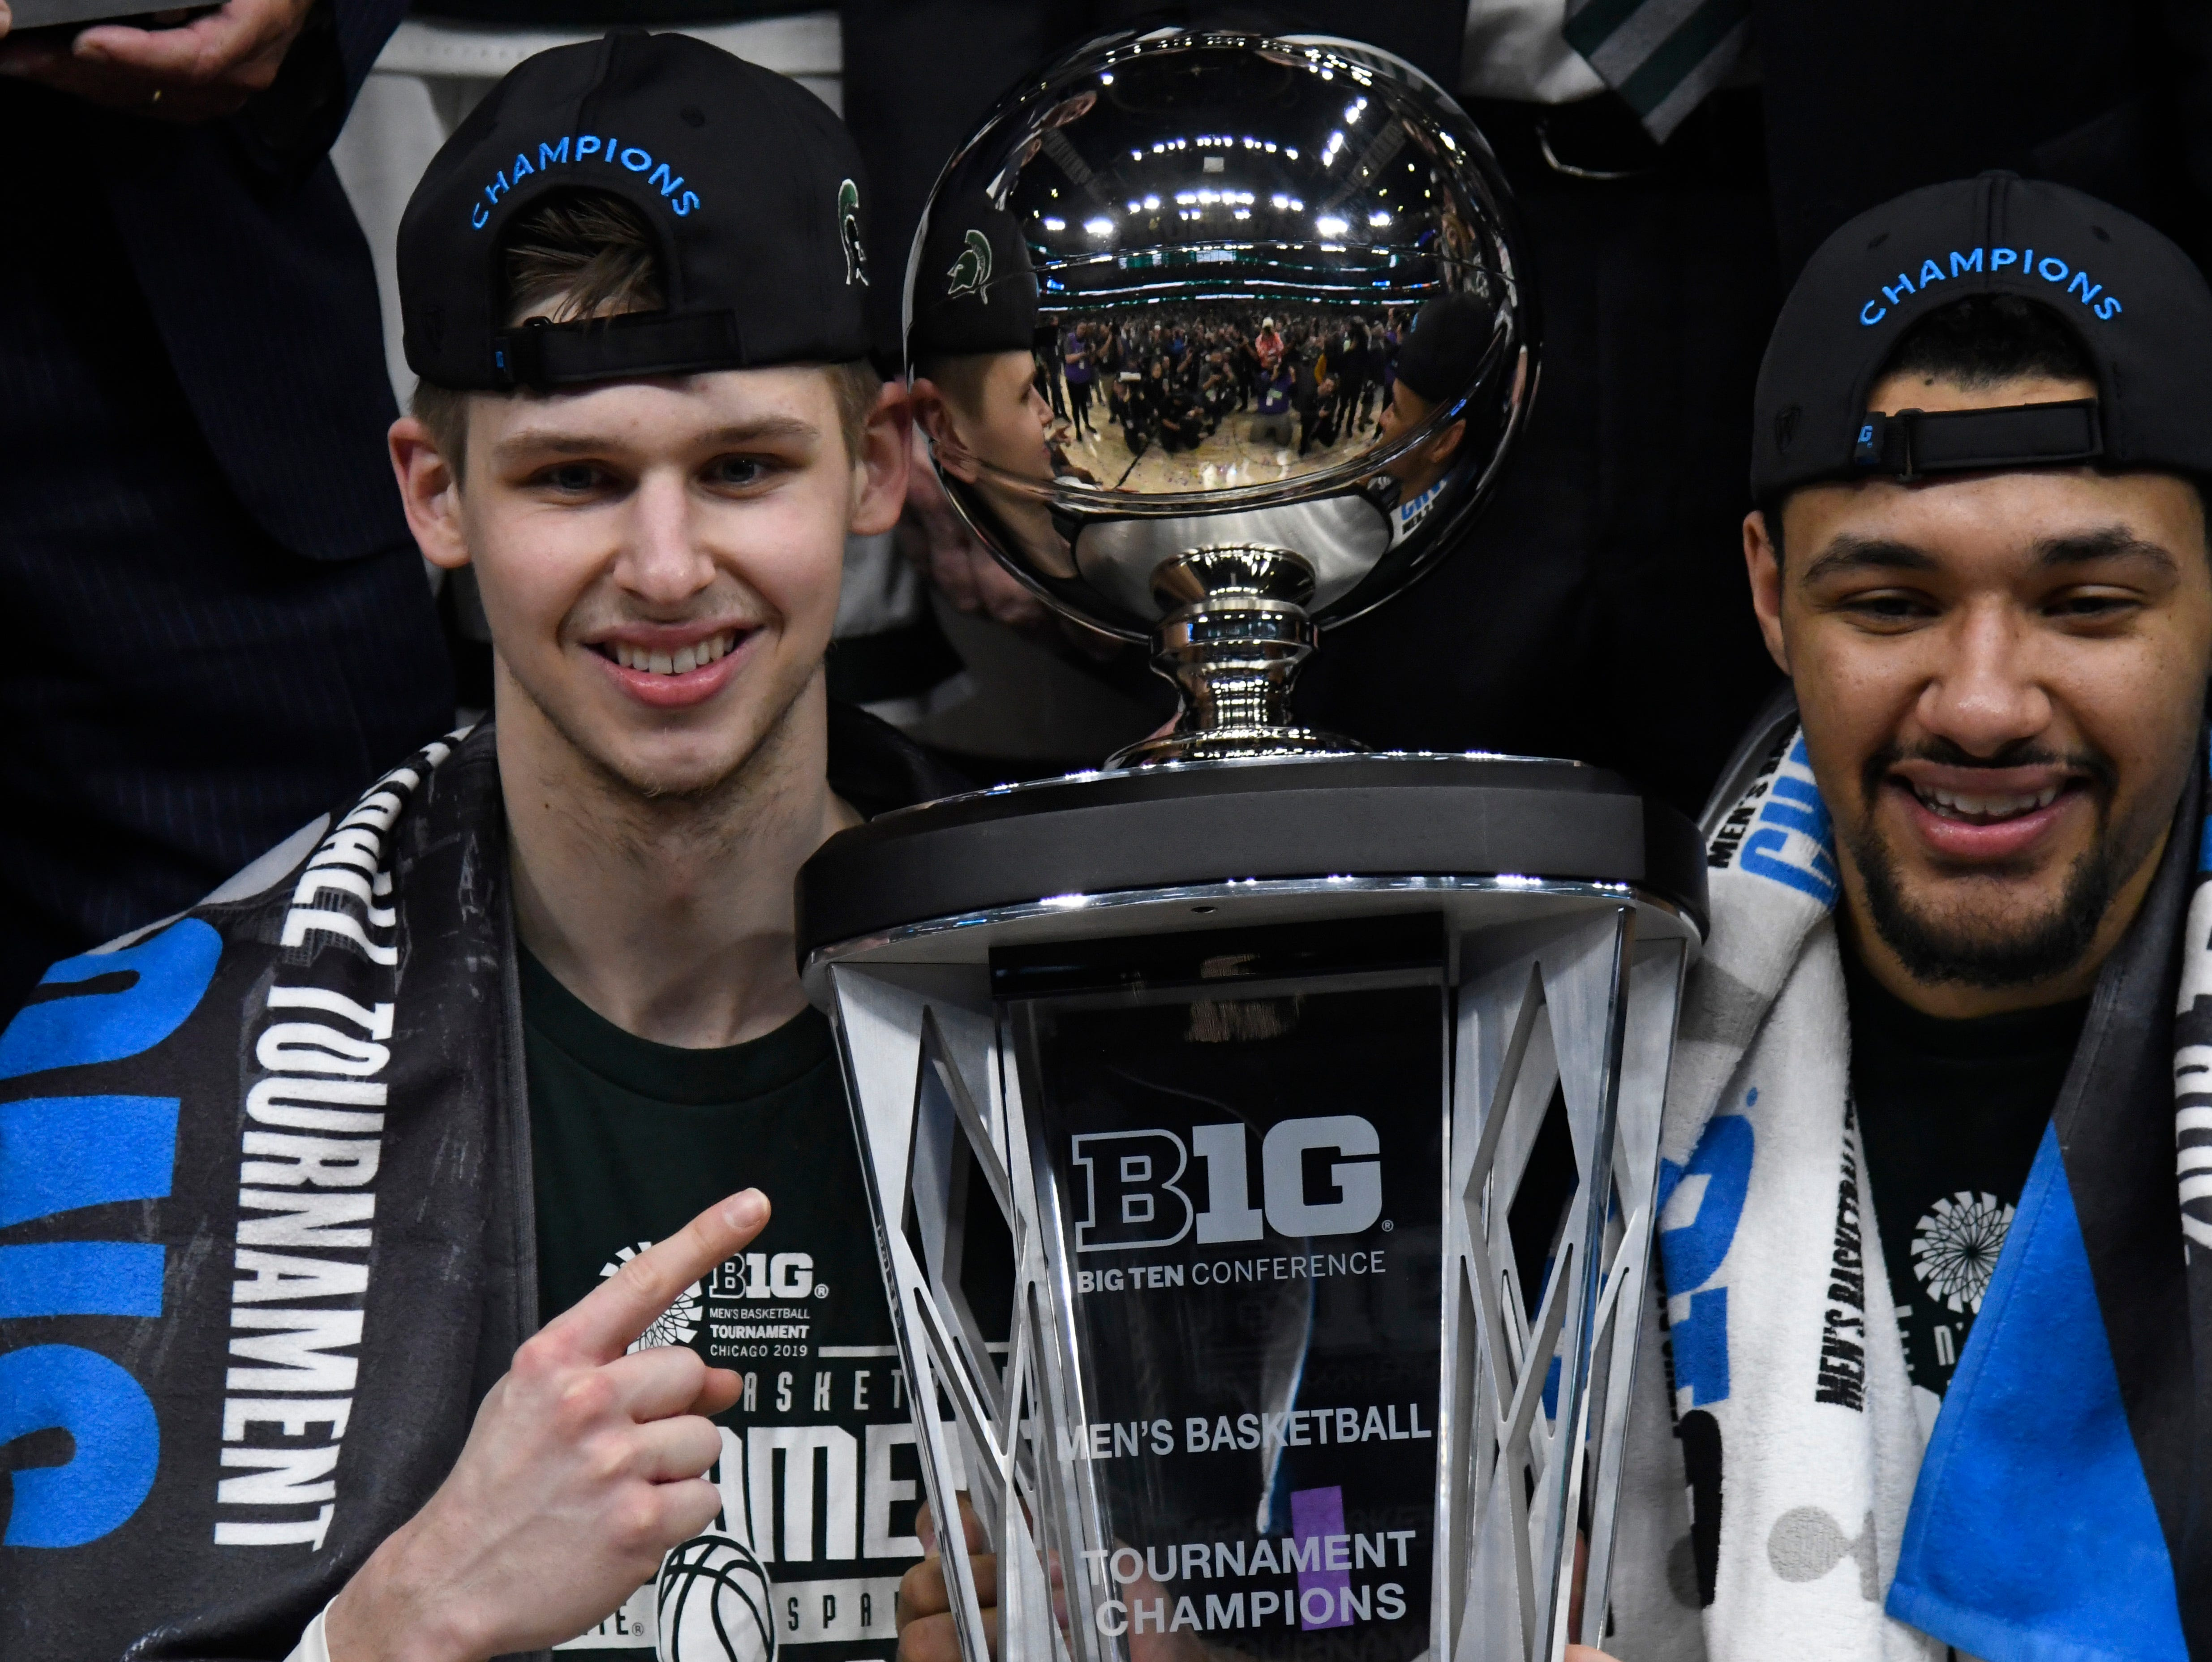 Mar 17, 2019; Chicago, IL, USA; Michigan State Spartans guard Matt McQuaid (left) and forward Kenny Goins (right) celebrate their Big Ten championship in the Big Ten conference tournament at United Center. Mandatory Credit: David Banks-USA TODAY Sports